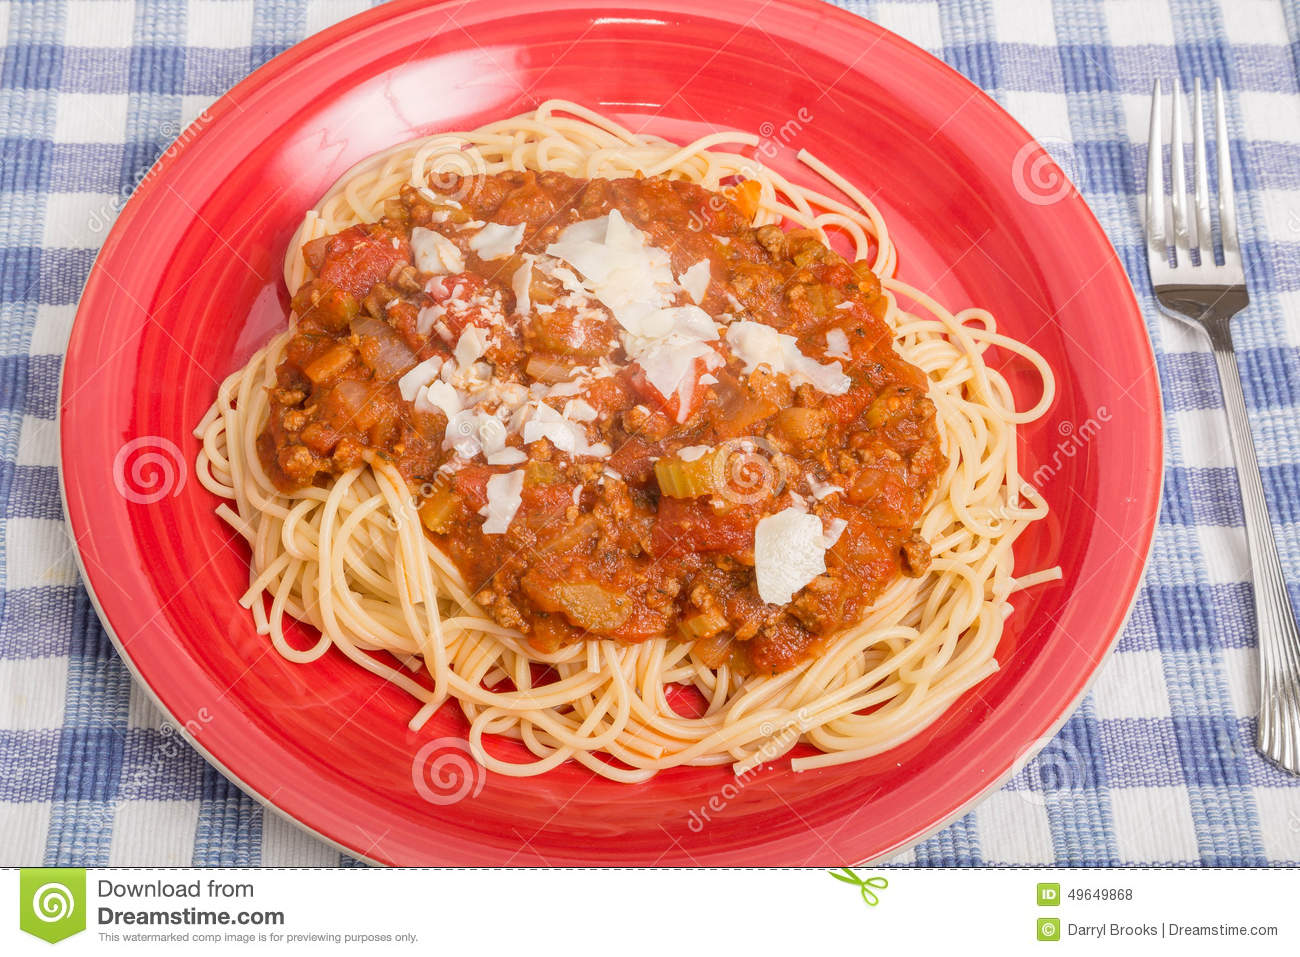 plate of delicious spaghetti with meat sauce.